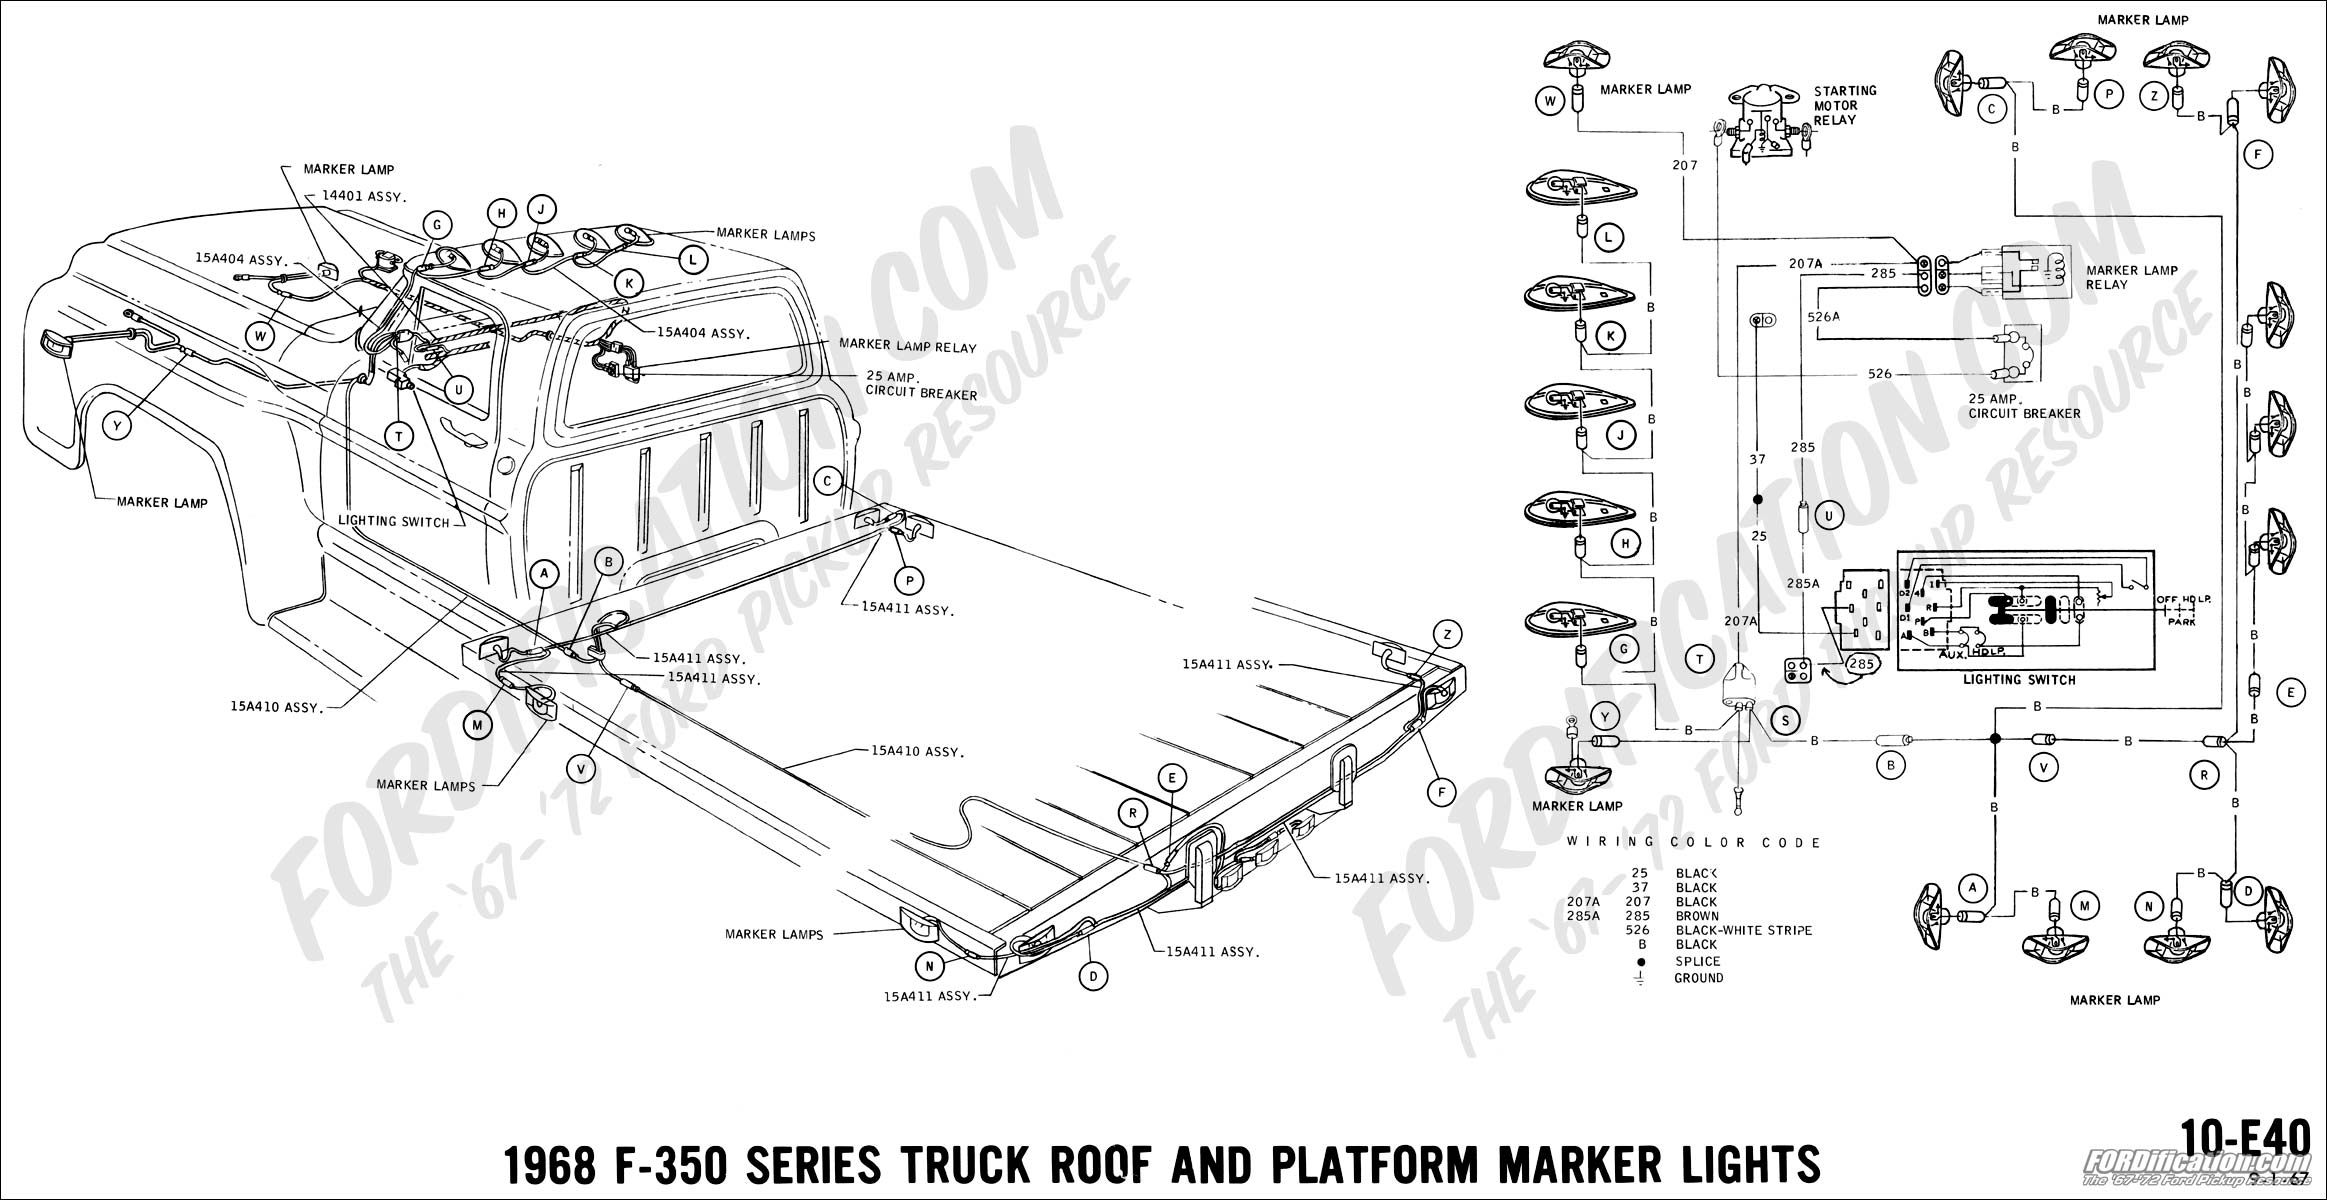 68 42 ford truck technical drawings and schematics section h wiring marker light wiring harness at readyjetset.co